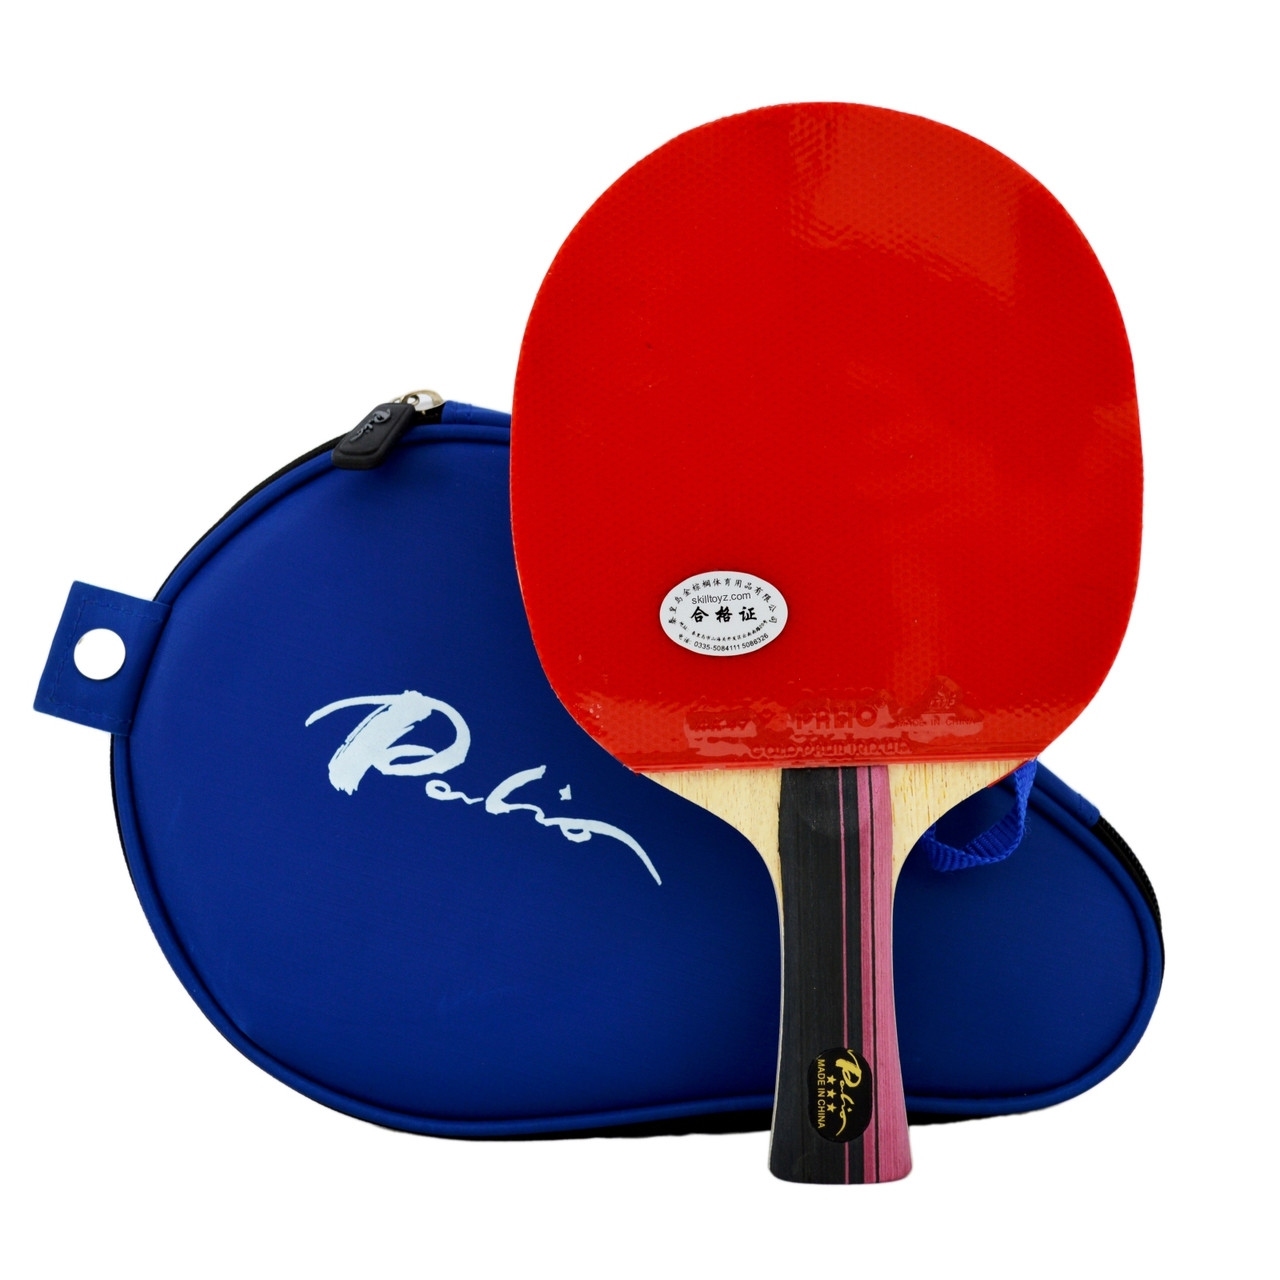 Palio 3 Star Professional Table Tennis Bat with case fitted with Palio AK47 Biotech rubbers  sc 1 st  SkillToyz : table tennis set sports direct - pezcame.com